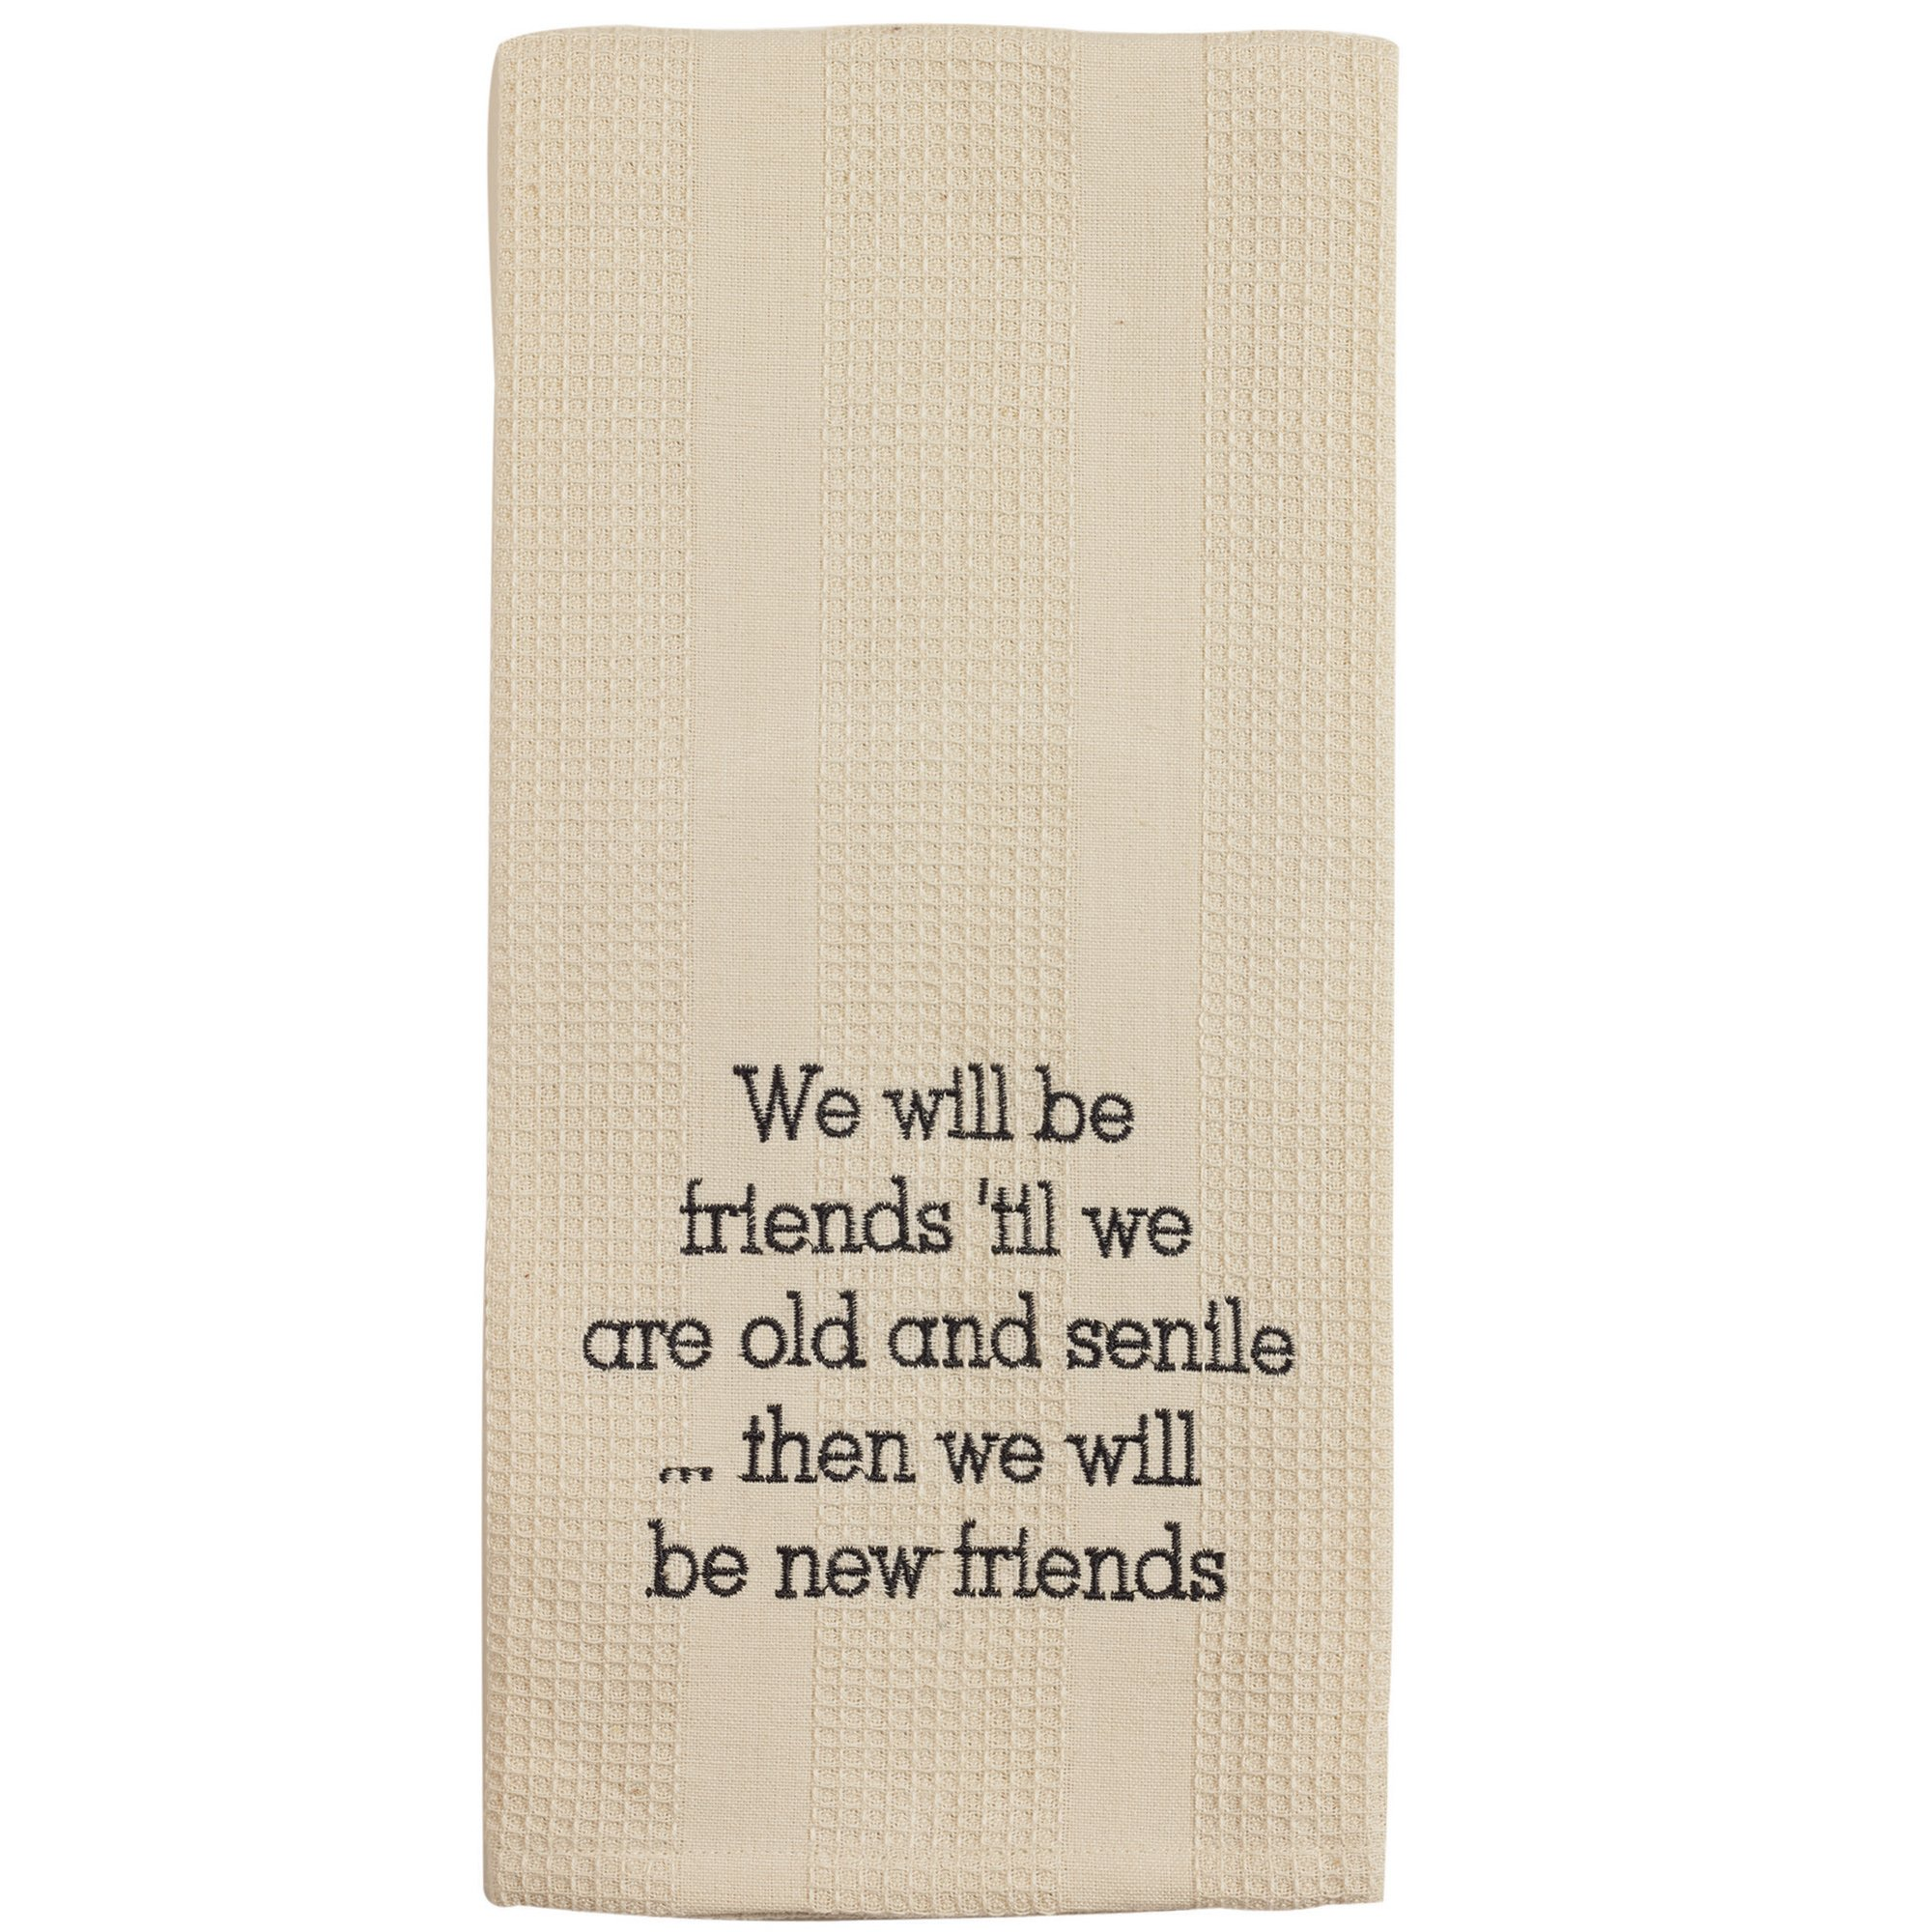 Cream Friends 'Til We Are Old and Senile 19 x 28 Inch Embroidered Cotton Waffle Dish Towel